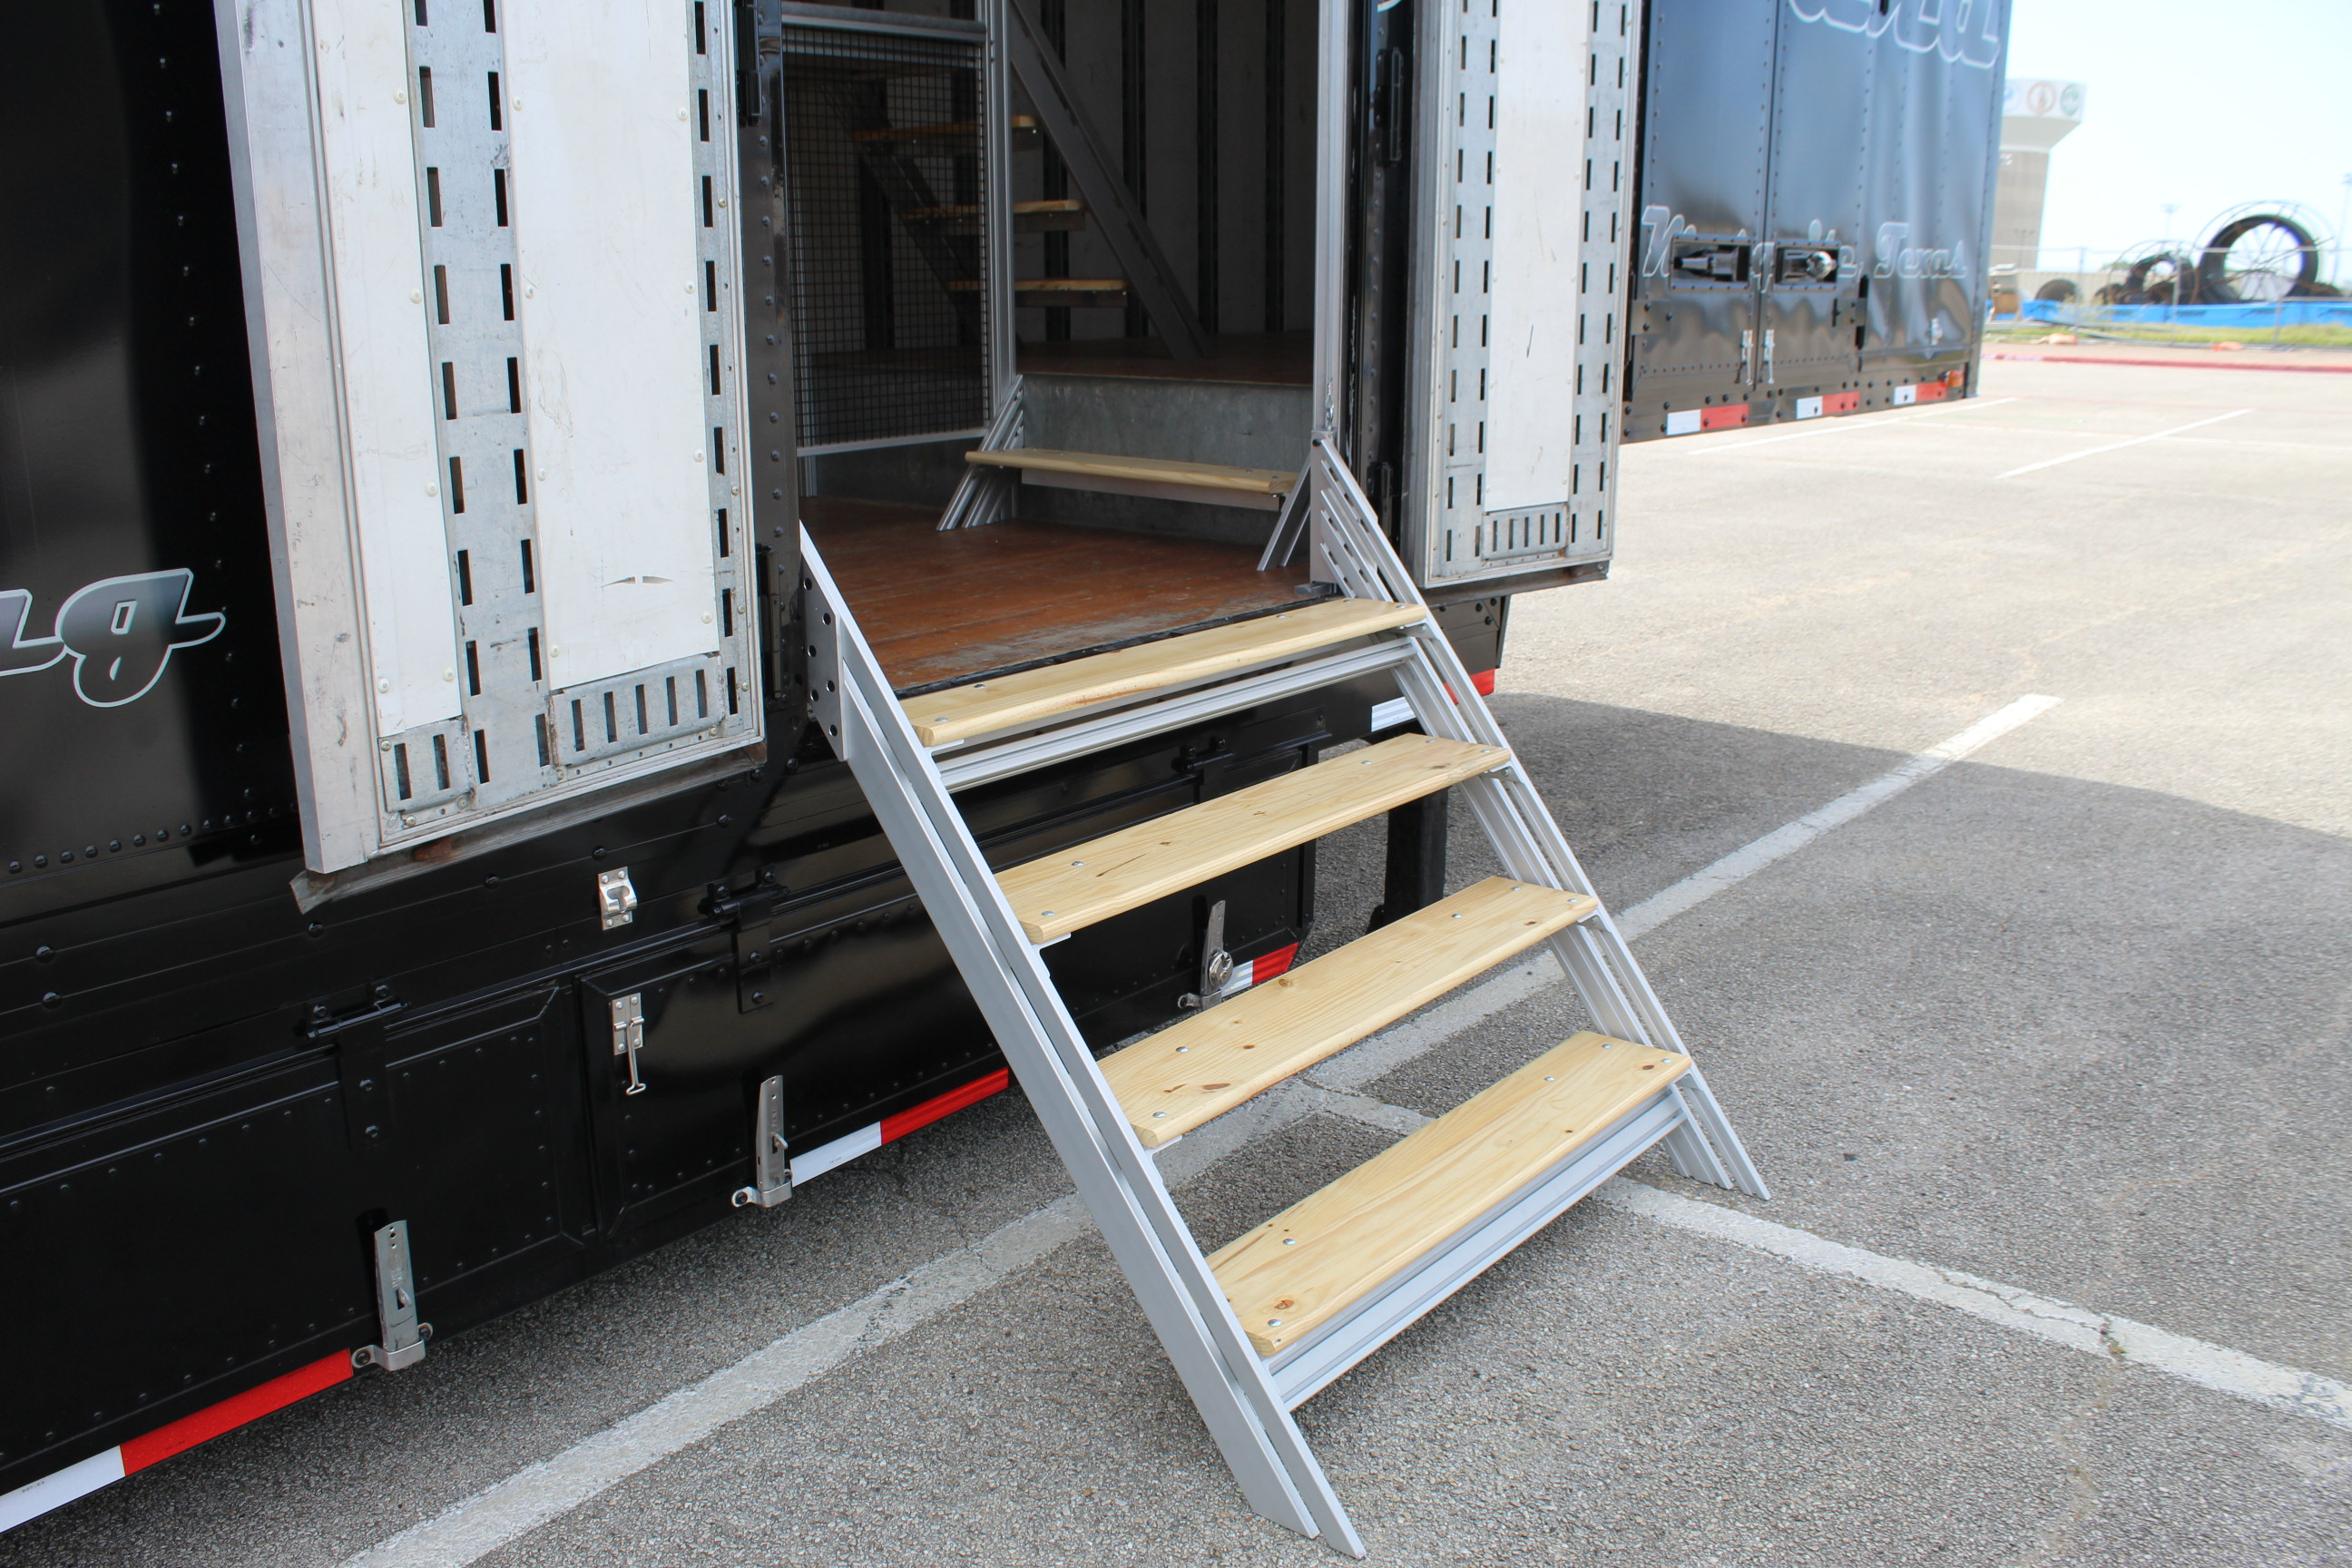 Best ideas about The Staircase Trailer . Save or Pin West Mesquite High School – Clubhouse Trailer pany Now.